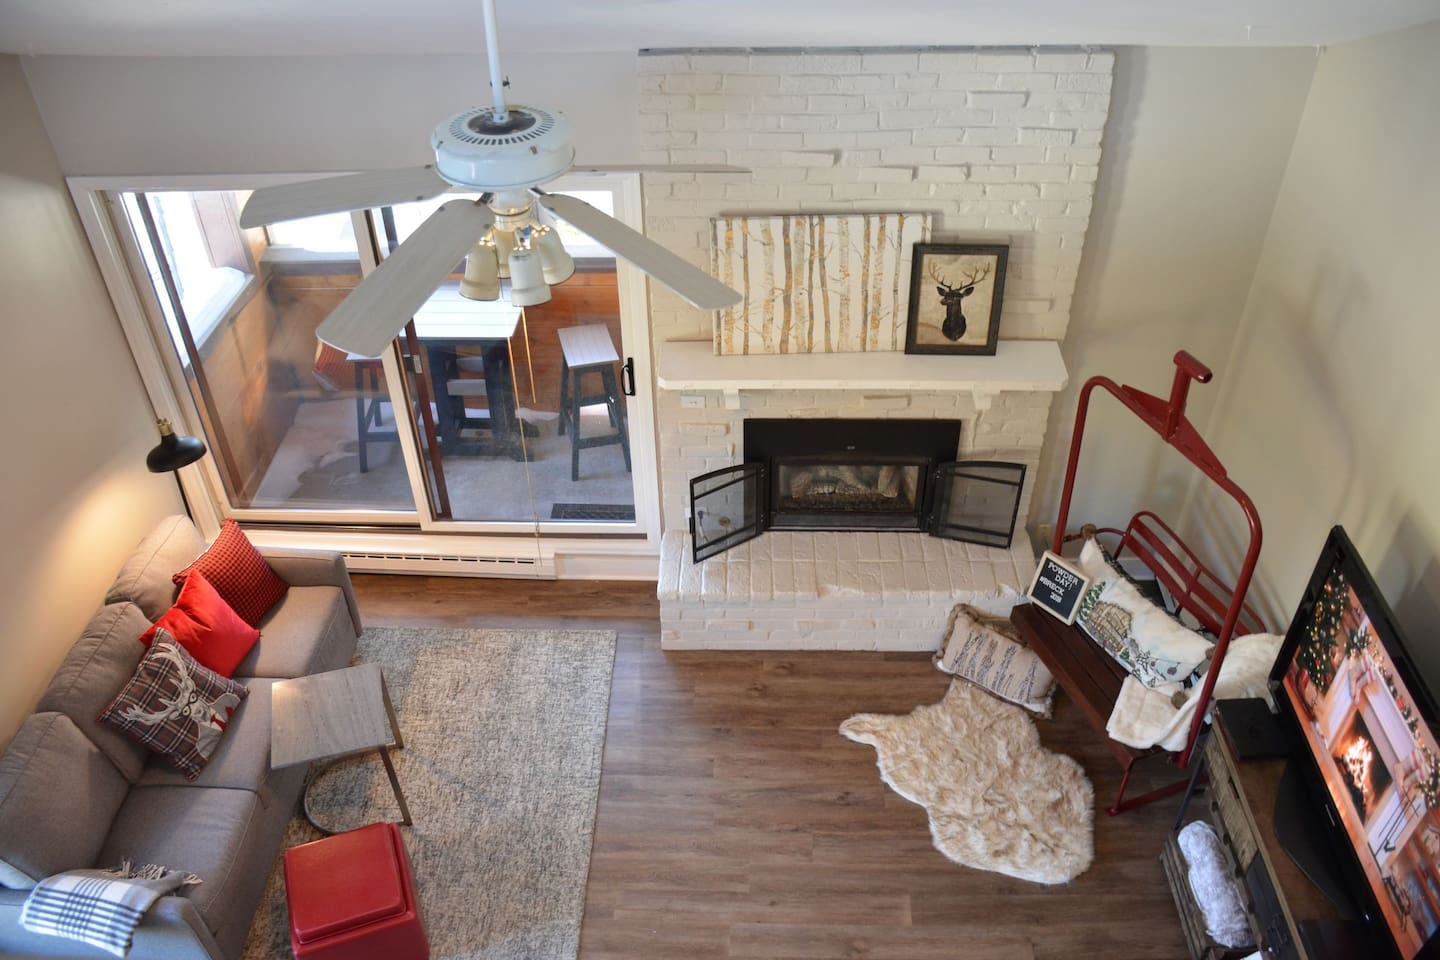 Welcome to your Instagrammable loft in beautiful Breckenridge!